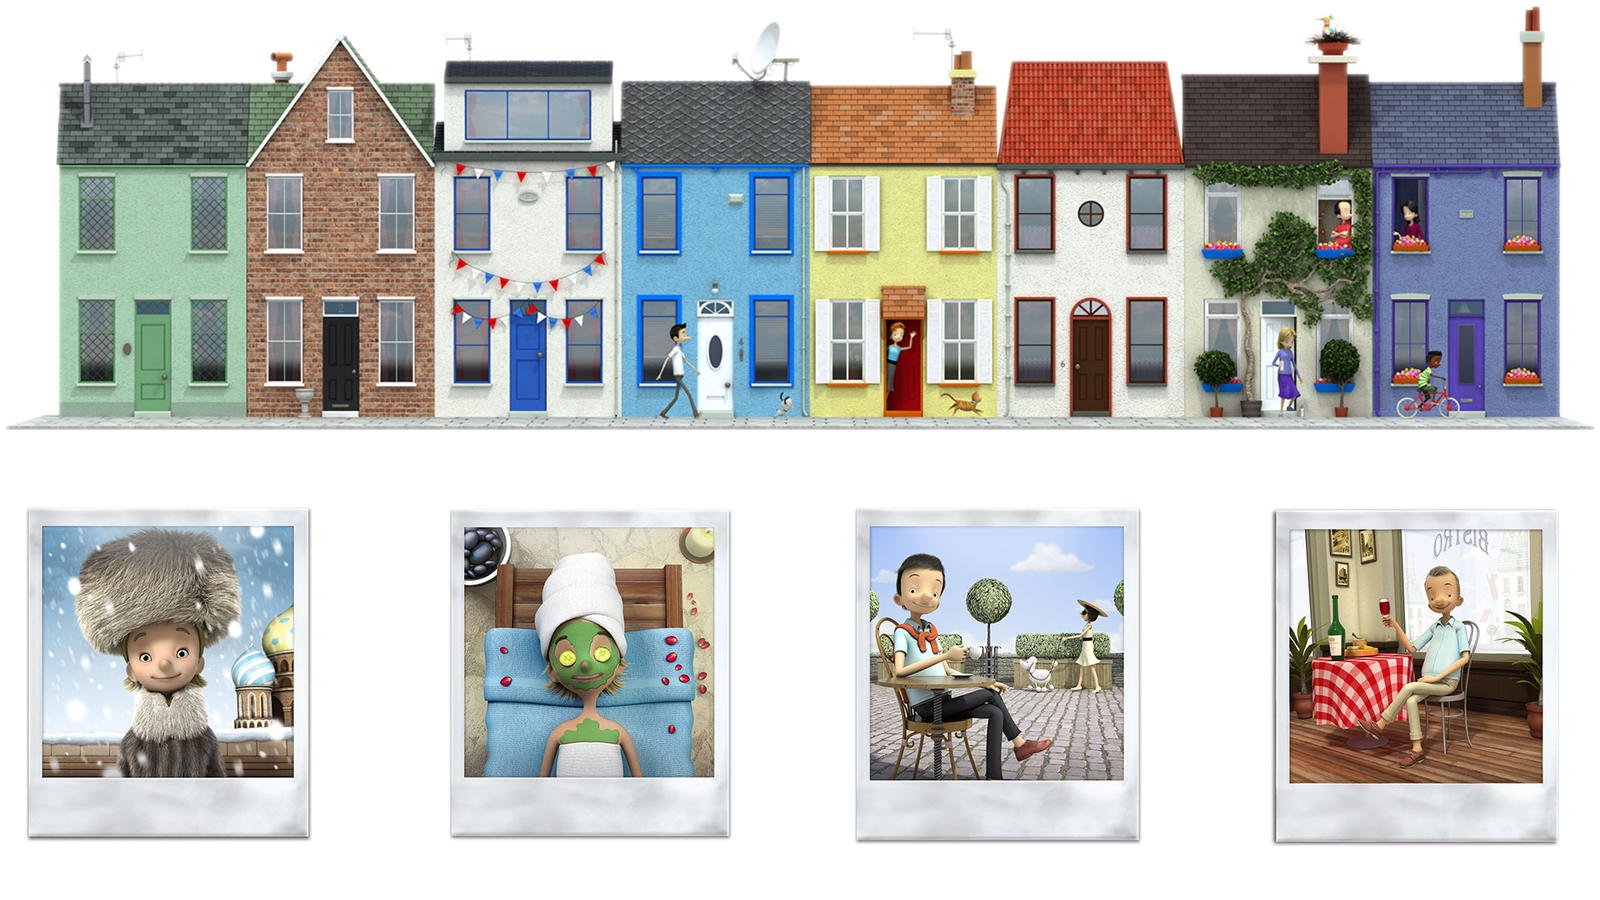 collection of images from the lloyds campaign, including Polaroid pictures of characters and street scene